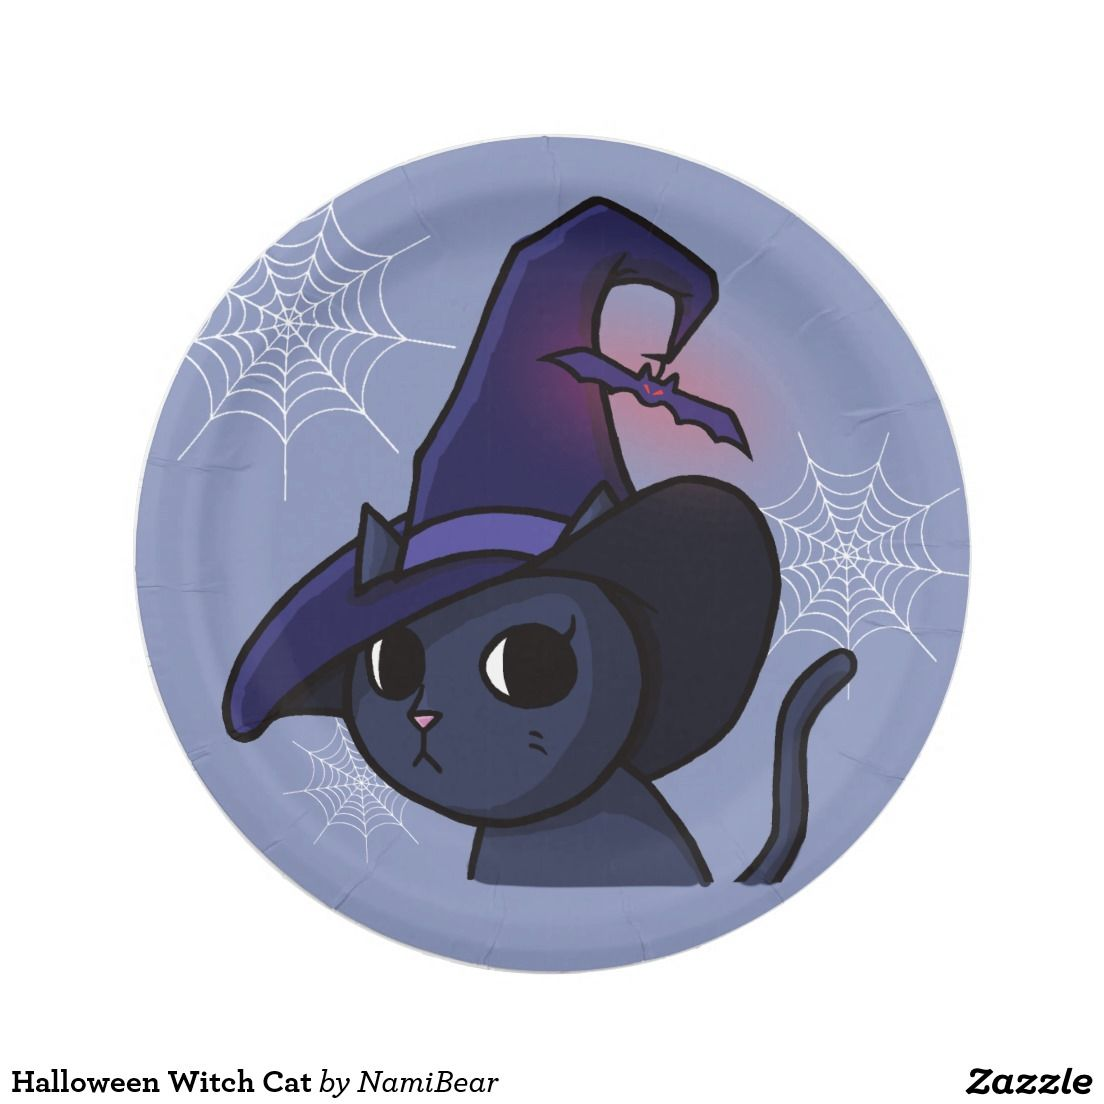 Halloween Witch Cat Paper Plate By Namibear On Zazzle Com This Is A Drawing Of A Black Cat Wearing A Dark Purple Witch Hat Purple Paper Witch Cat Themed Cards